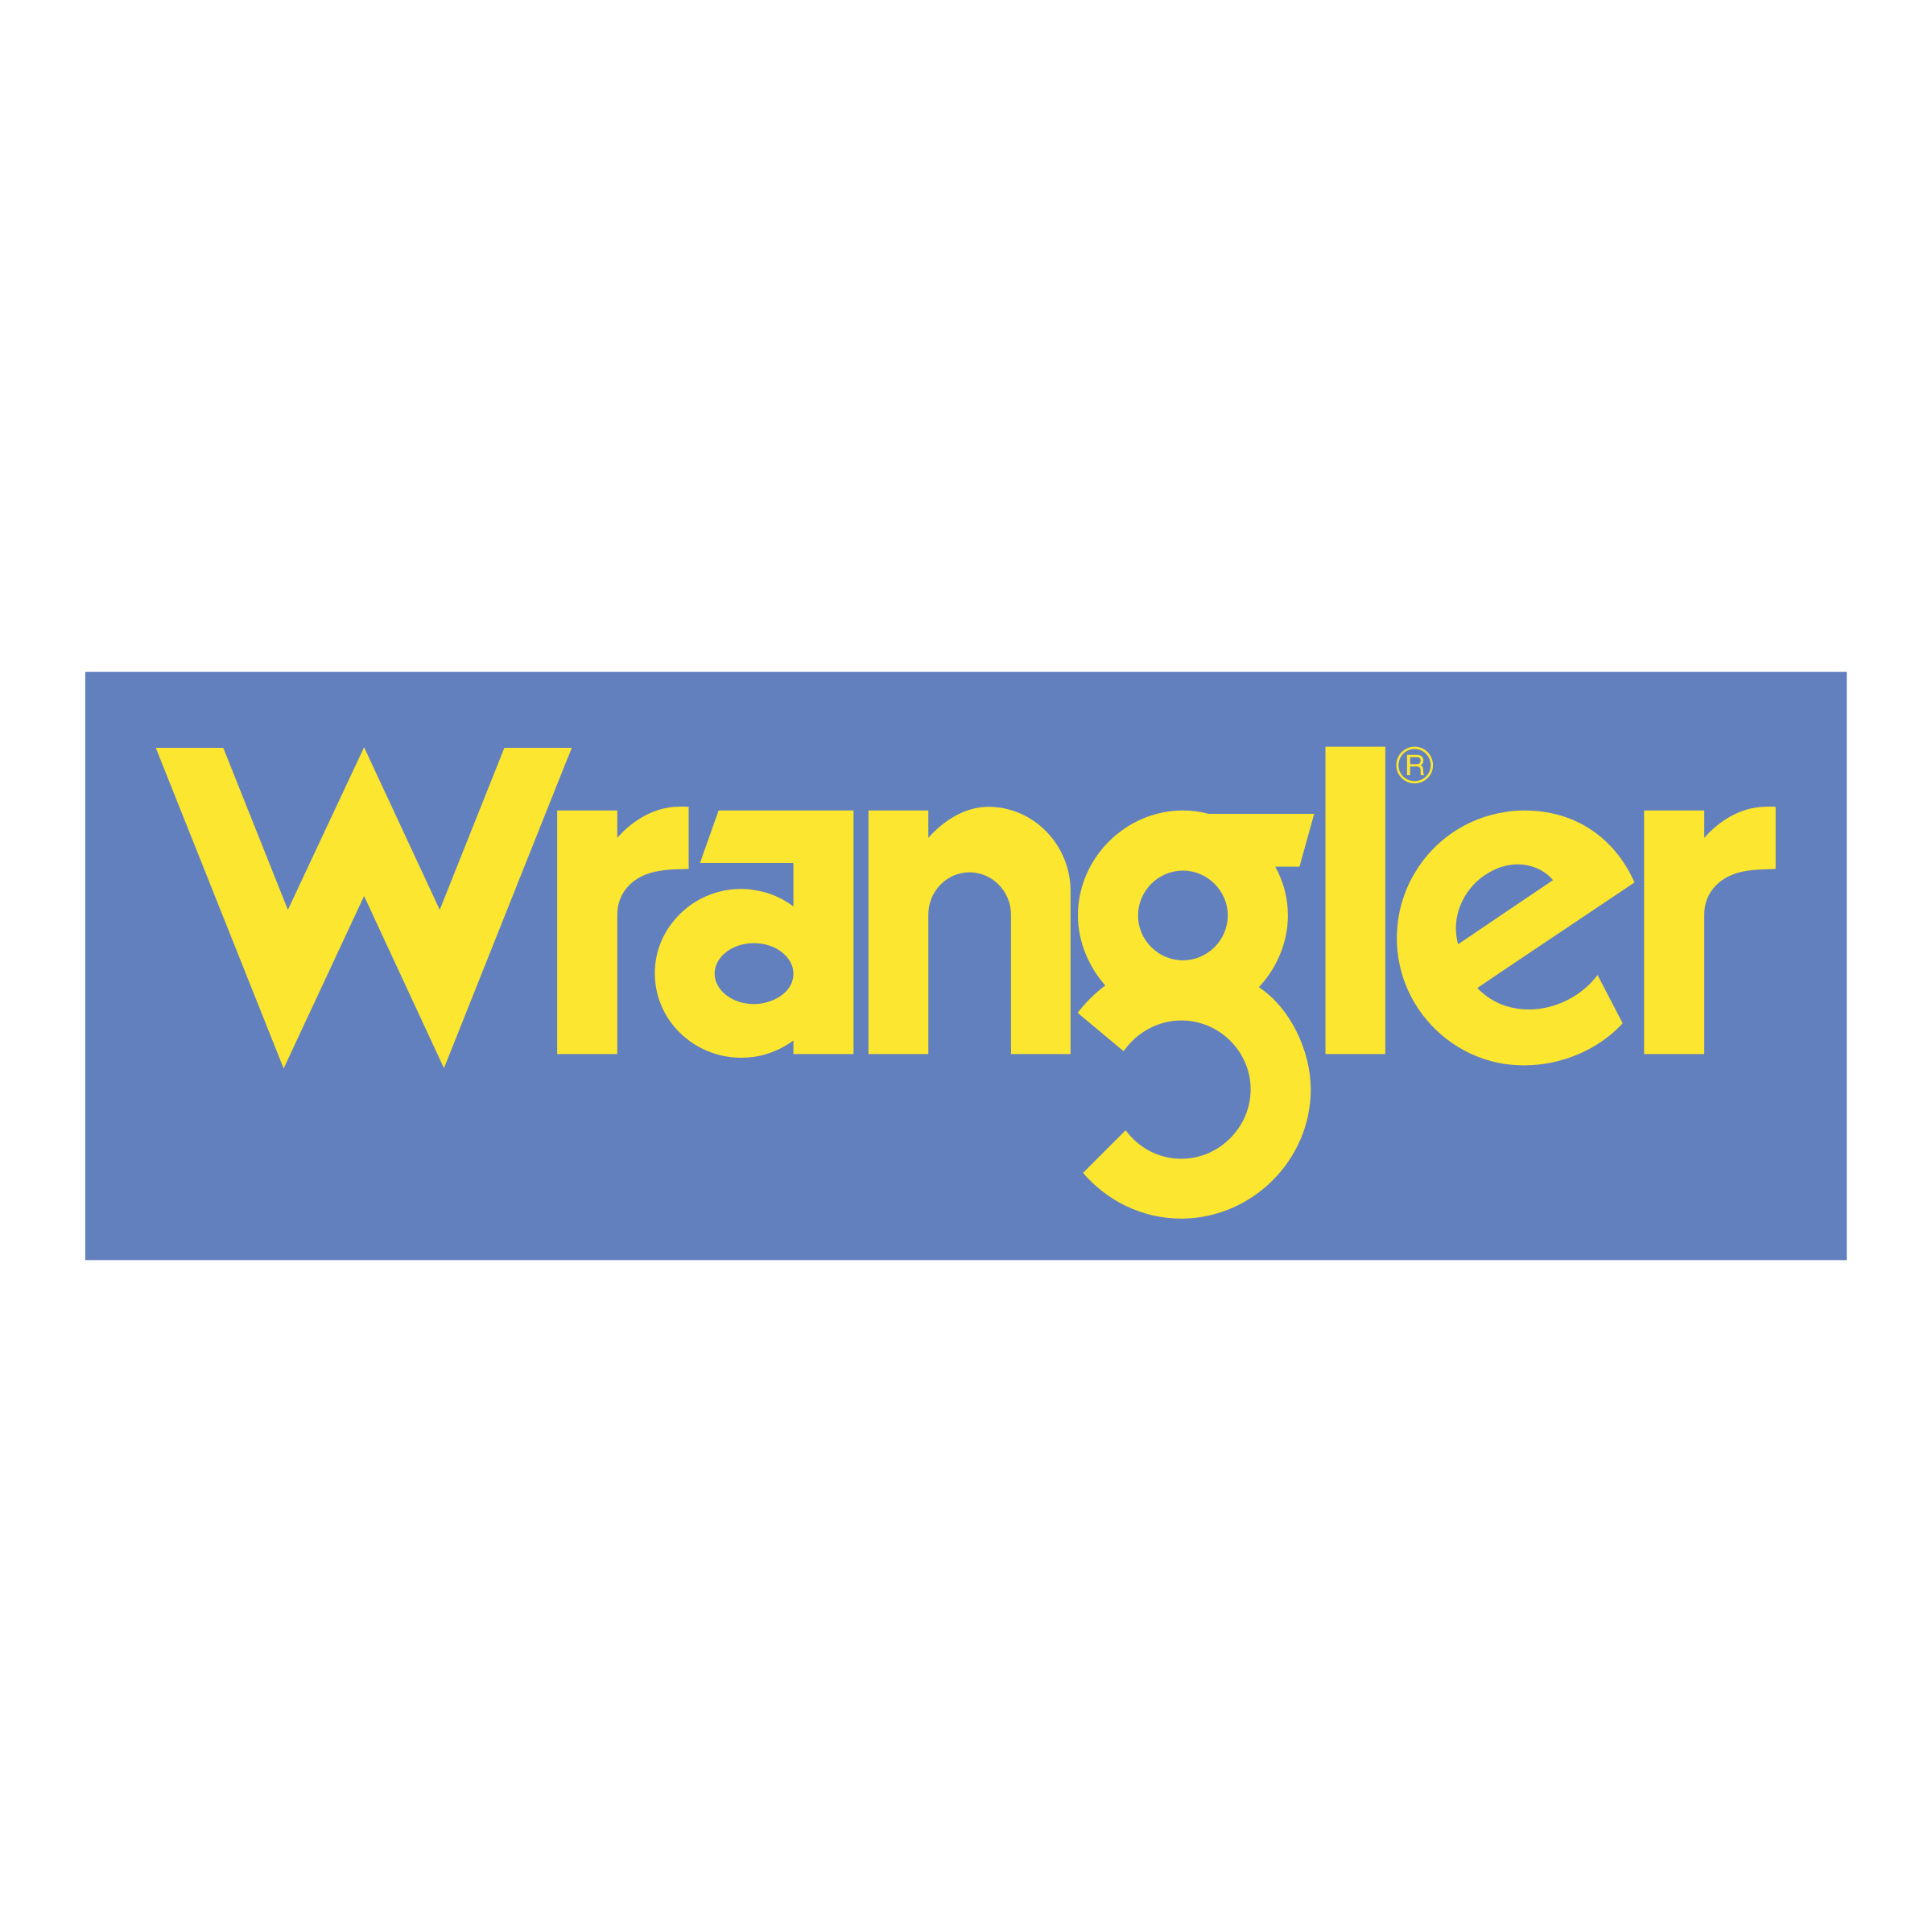 Wrangler Logo PNG Transparent & SVG Vector.